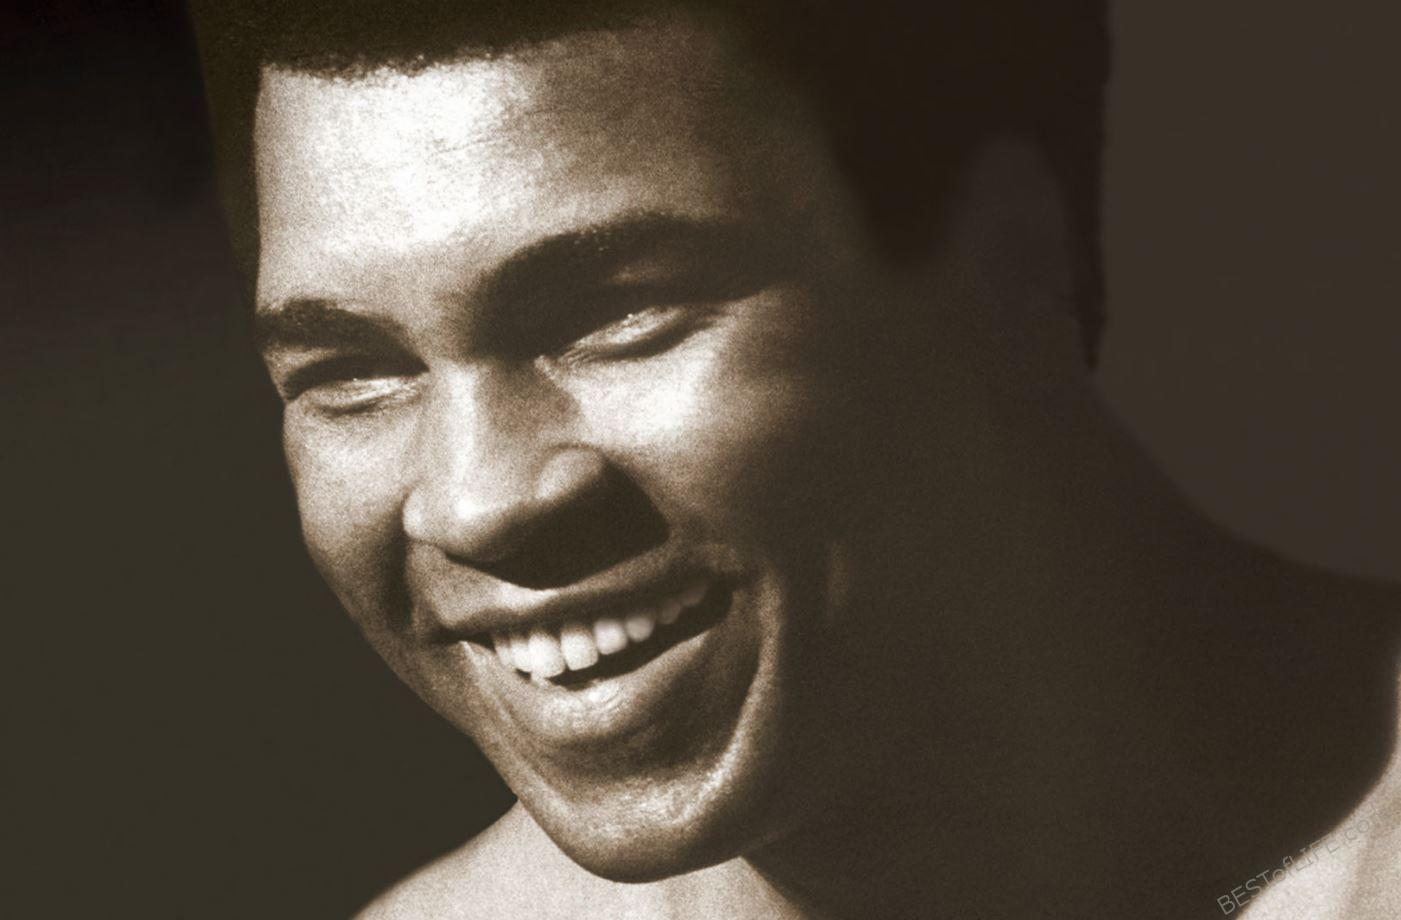 20 Best Muhammad Ali Quotes to Inspire Living - The Best ...